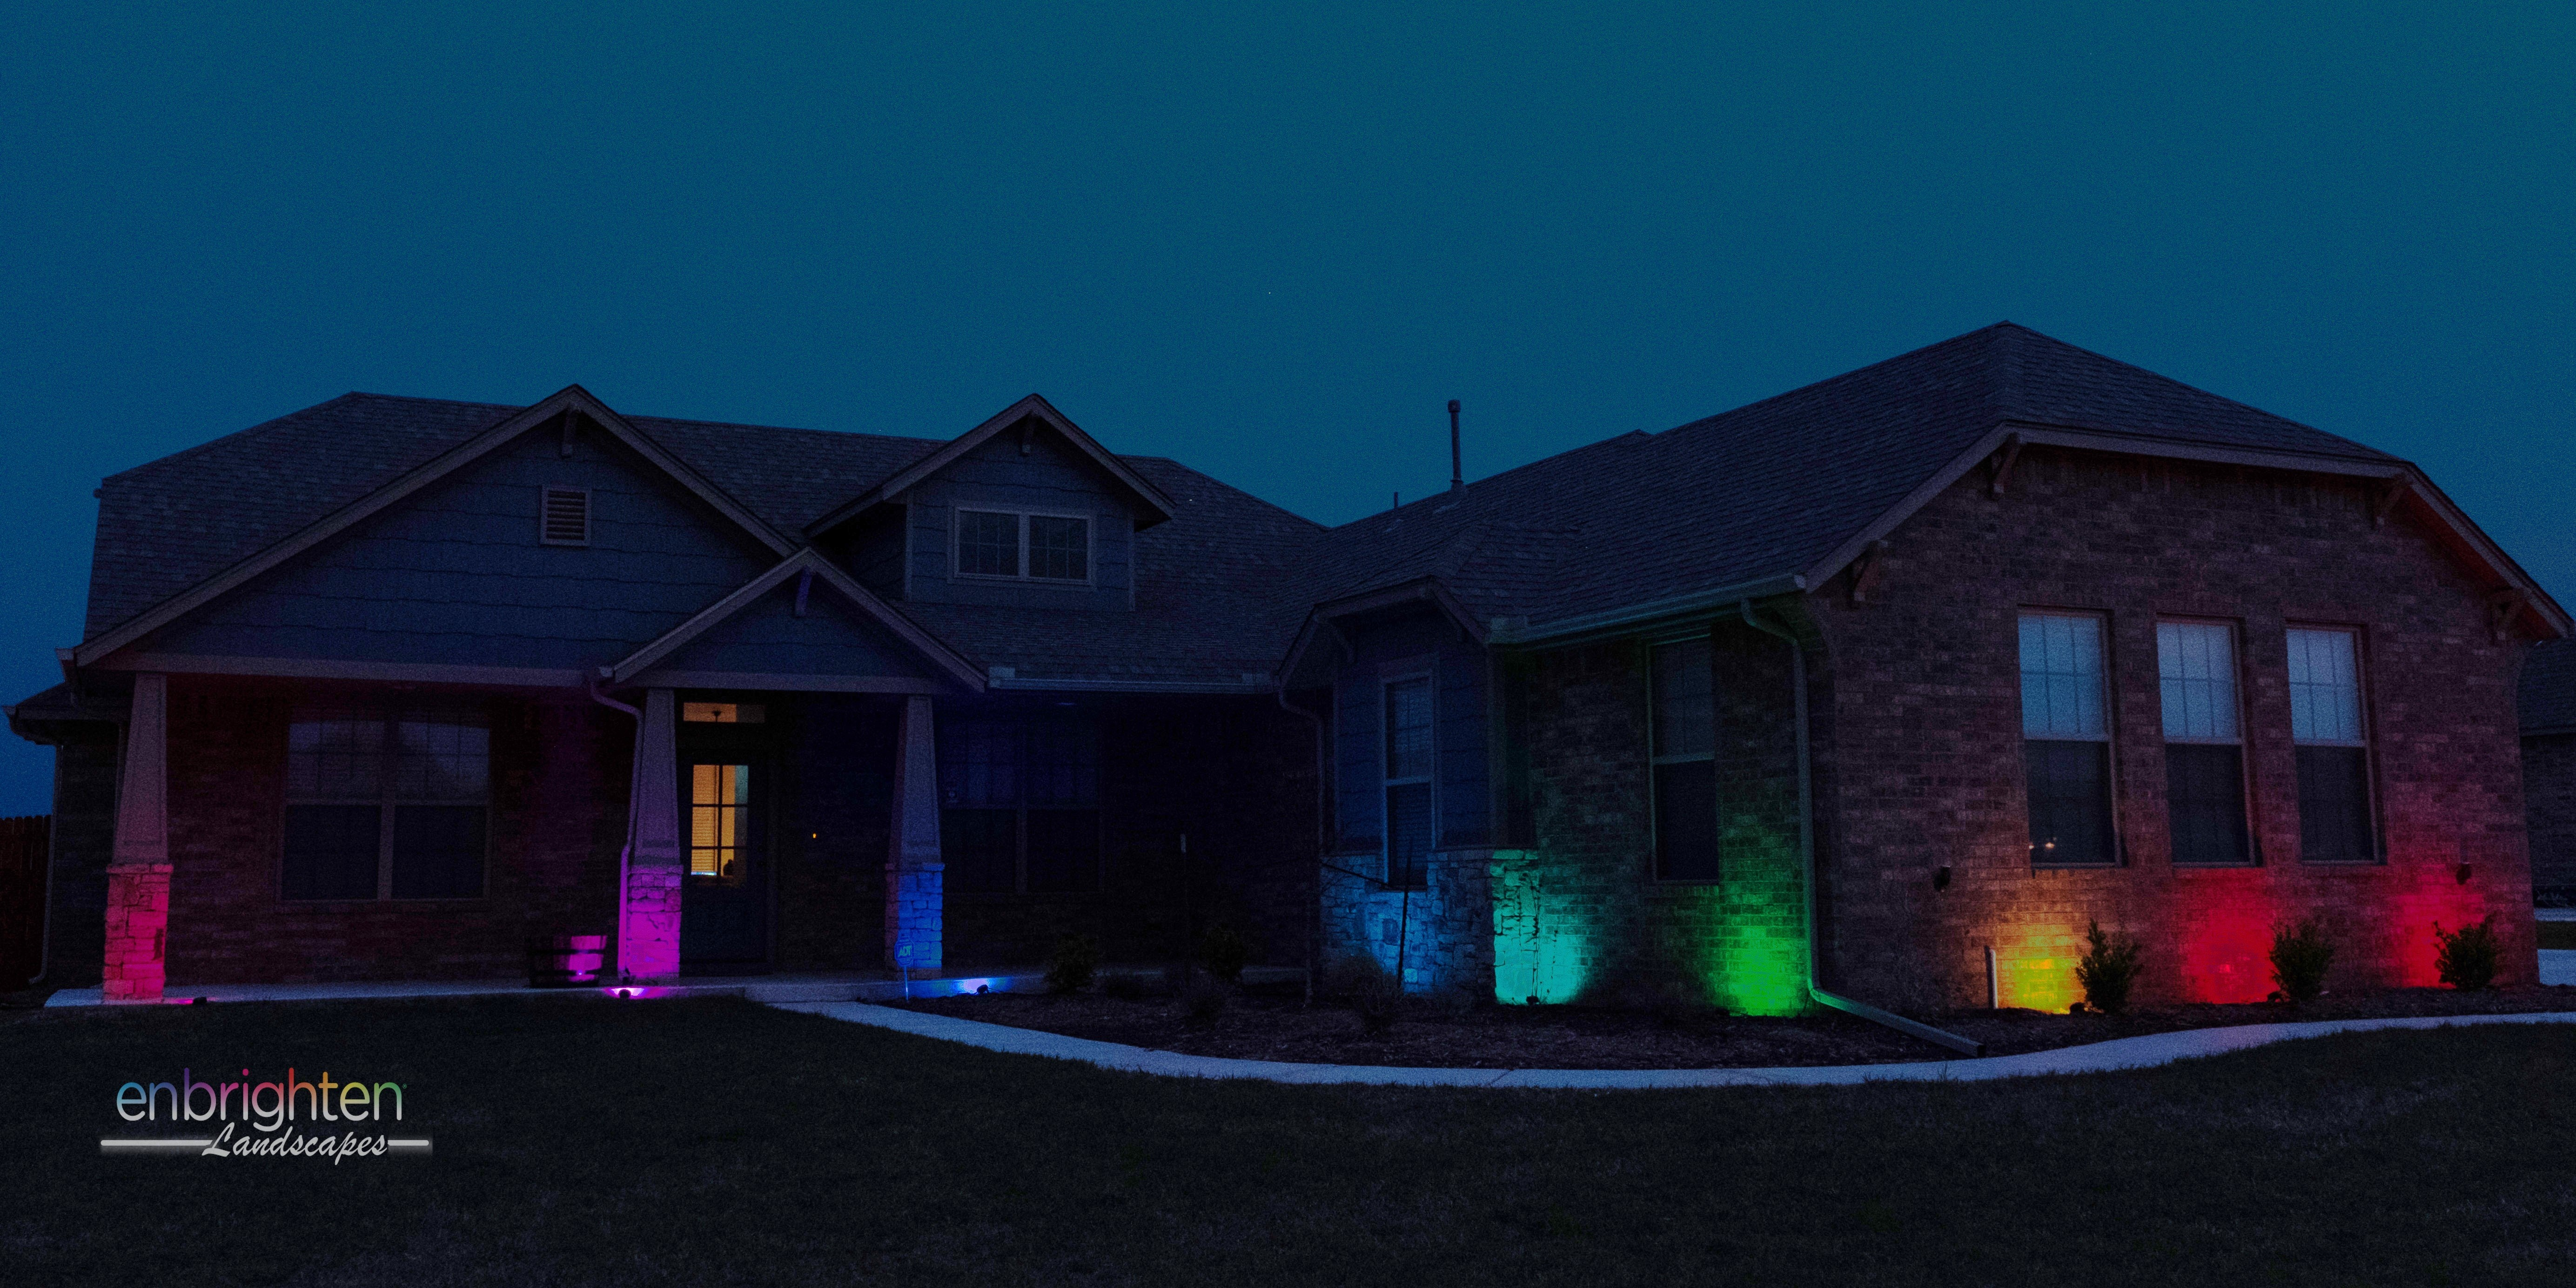 Add a vibrant touch to your landscaping with Multicolored-Enbrighten-Landscape-Lights in your flowerbed.